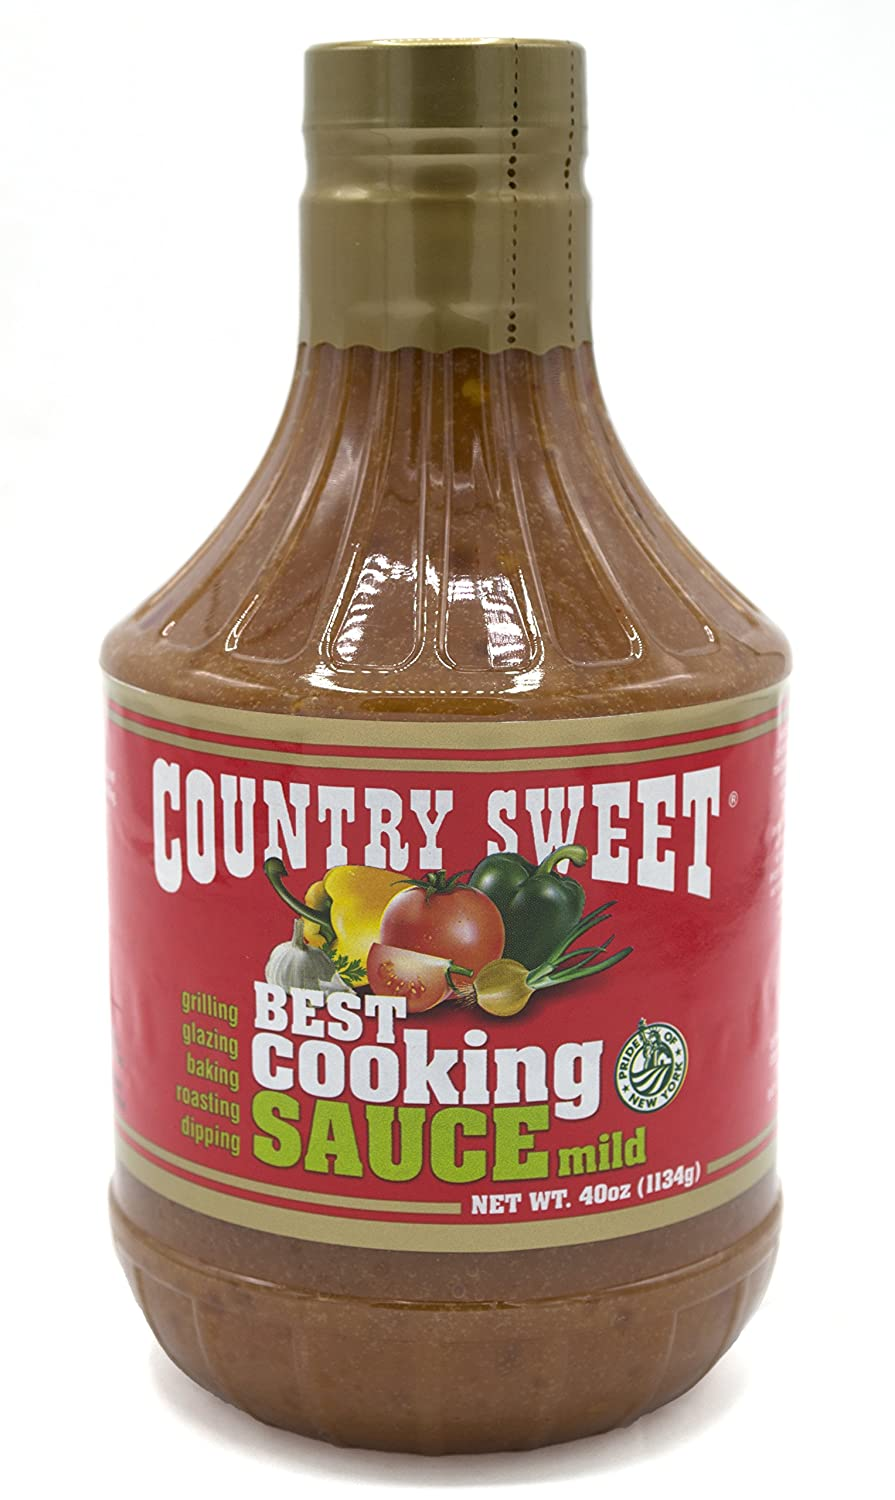 Country Sweet Sauce - Premium Cooking and Finishing Sauce (Mild, 40 ounces)